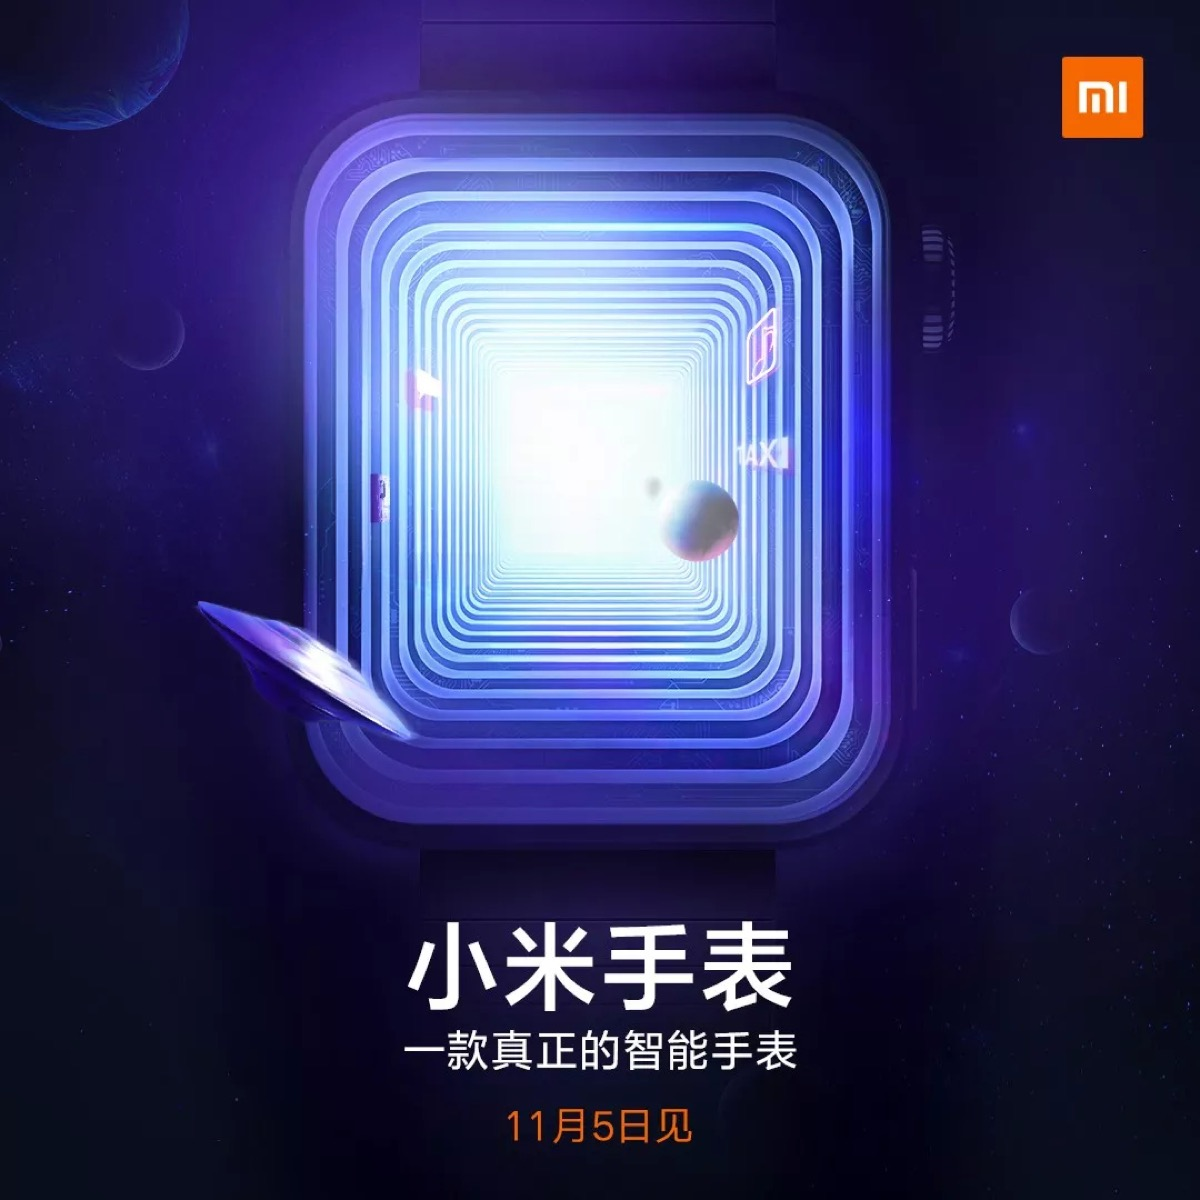 Xiaomi Mi Watch Event